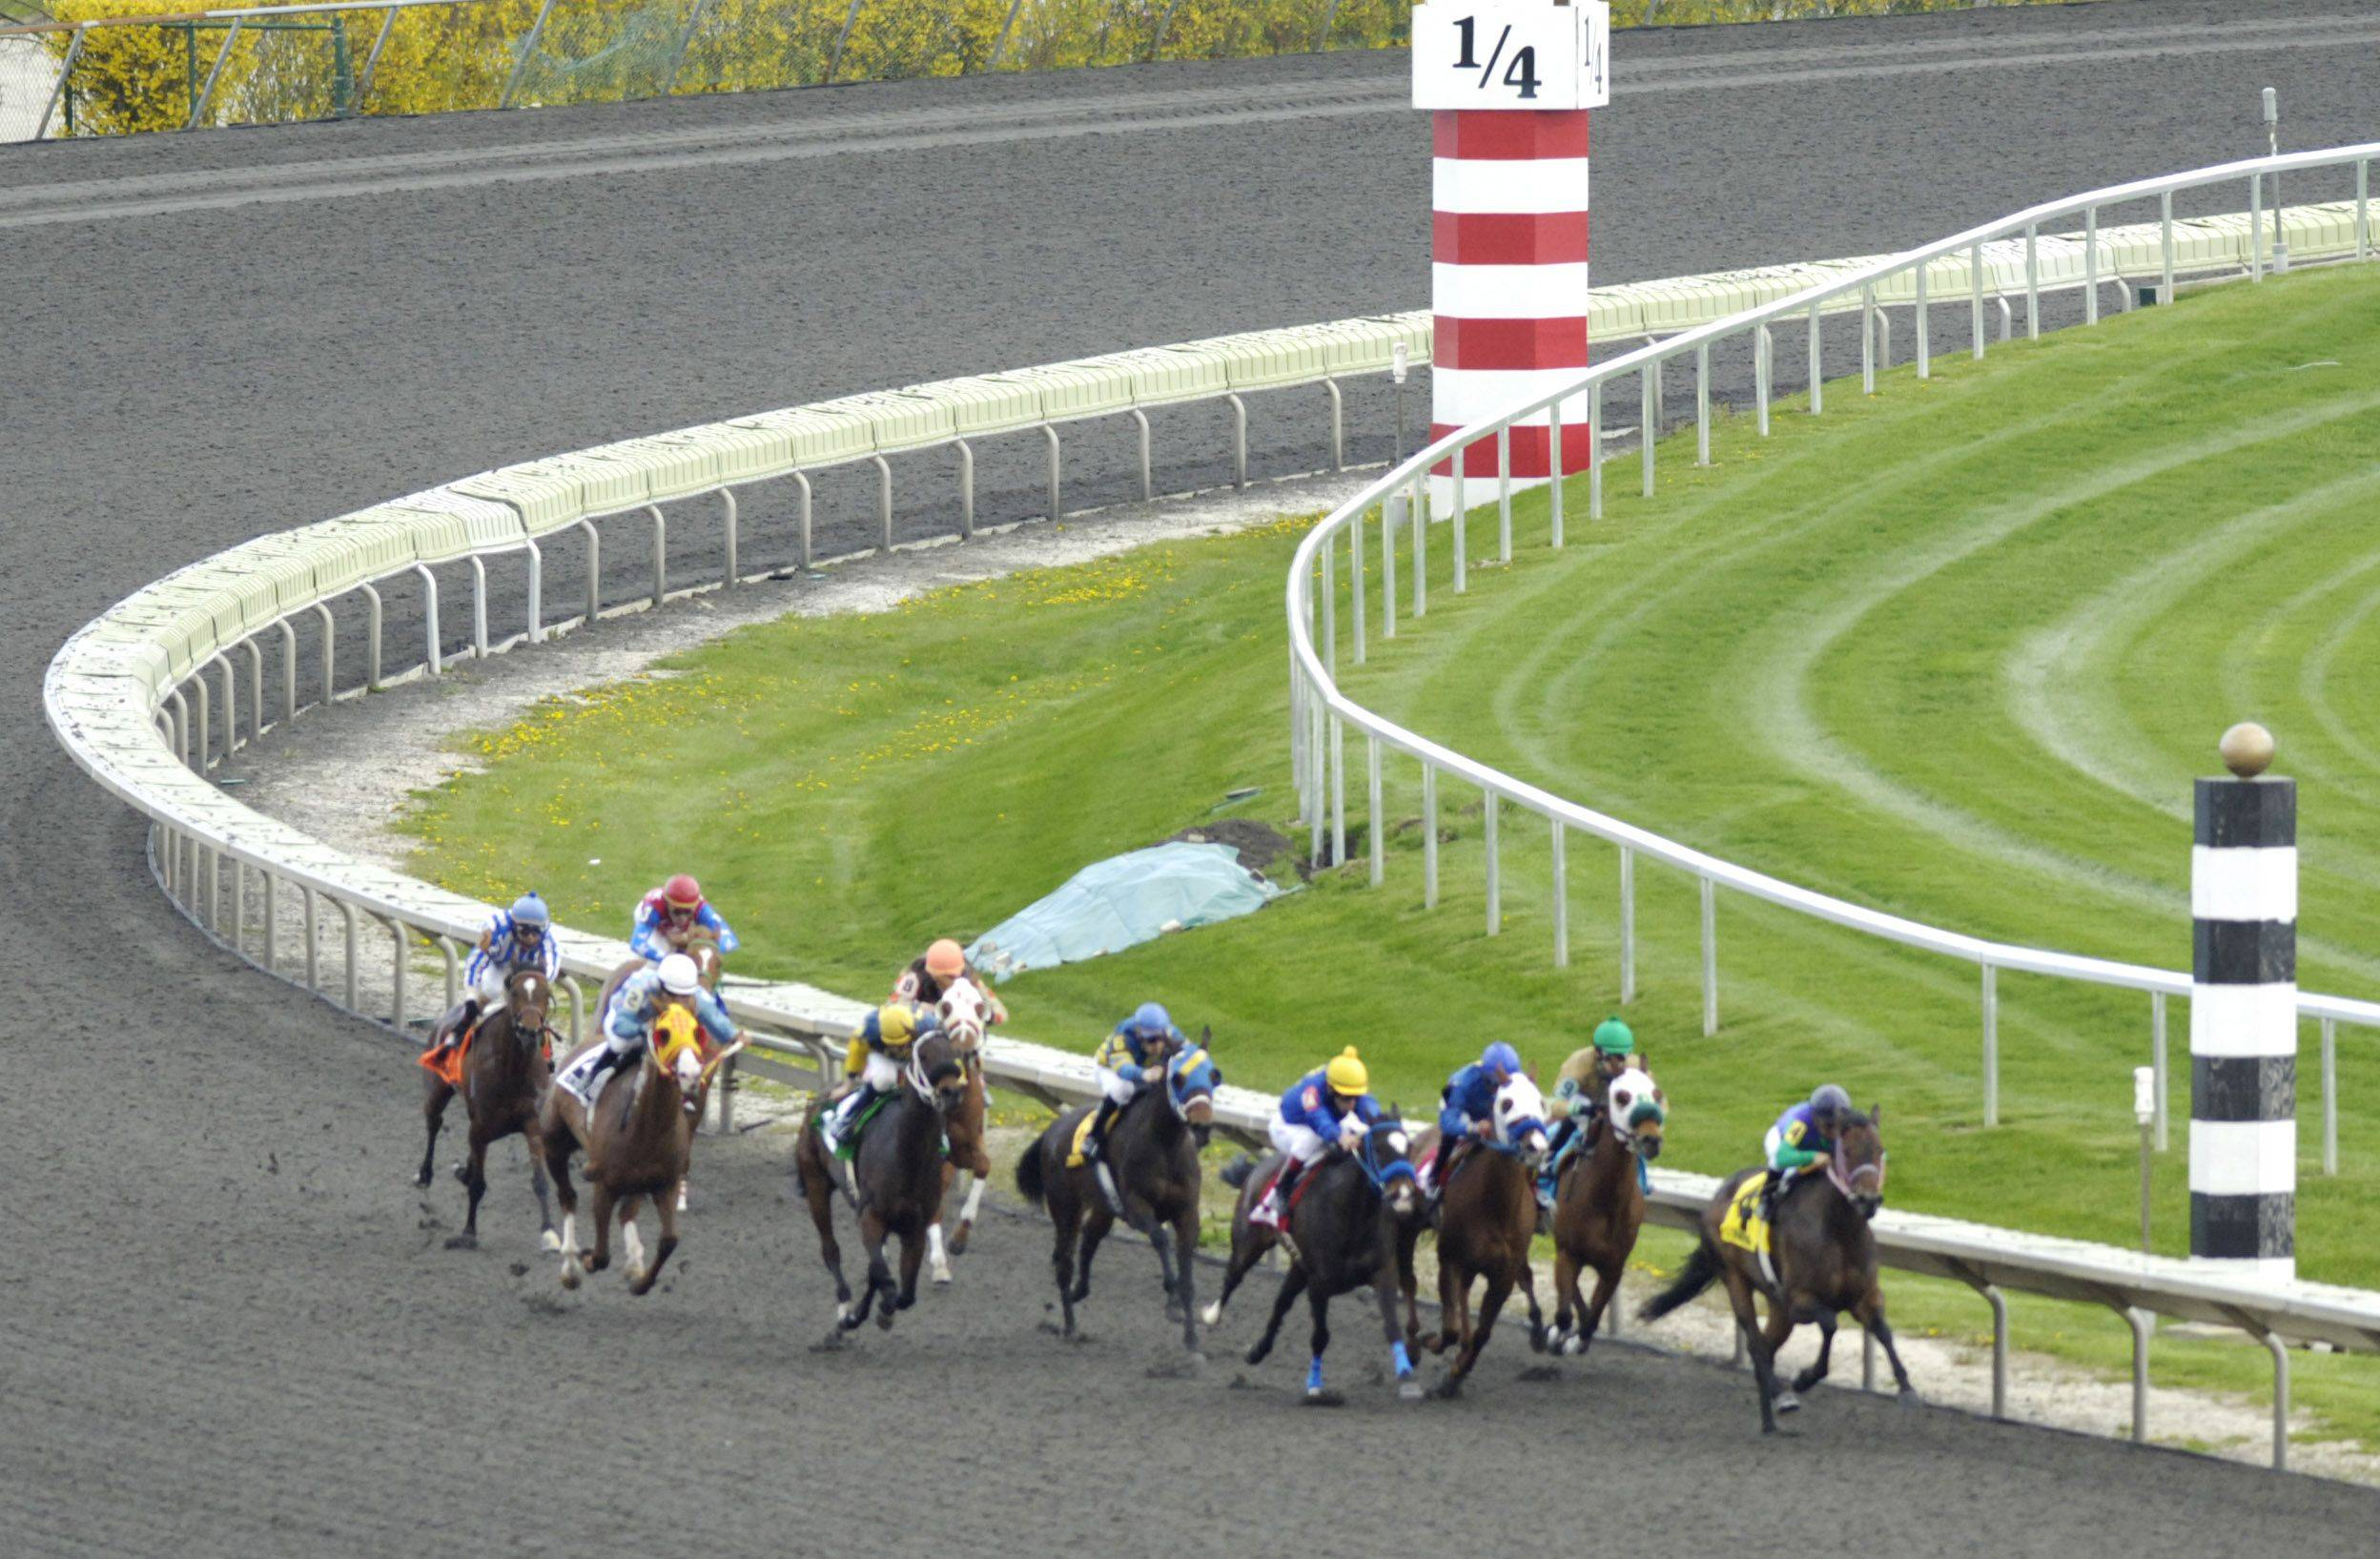 Horses in the fourth race head into the stretch on opening day at Arlington Park.